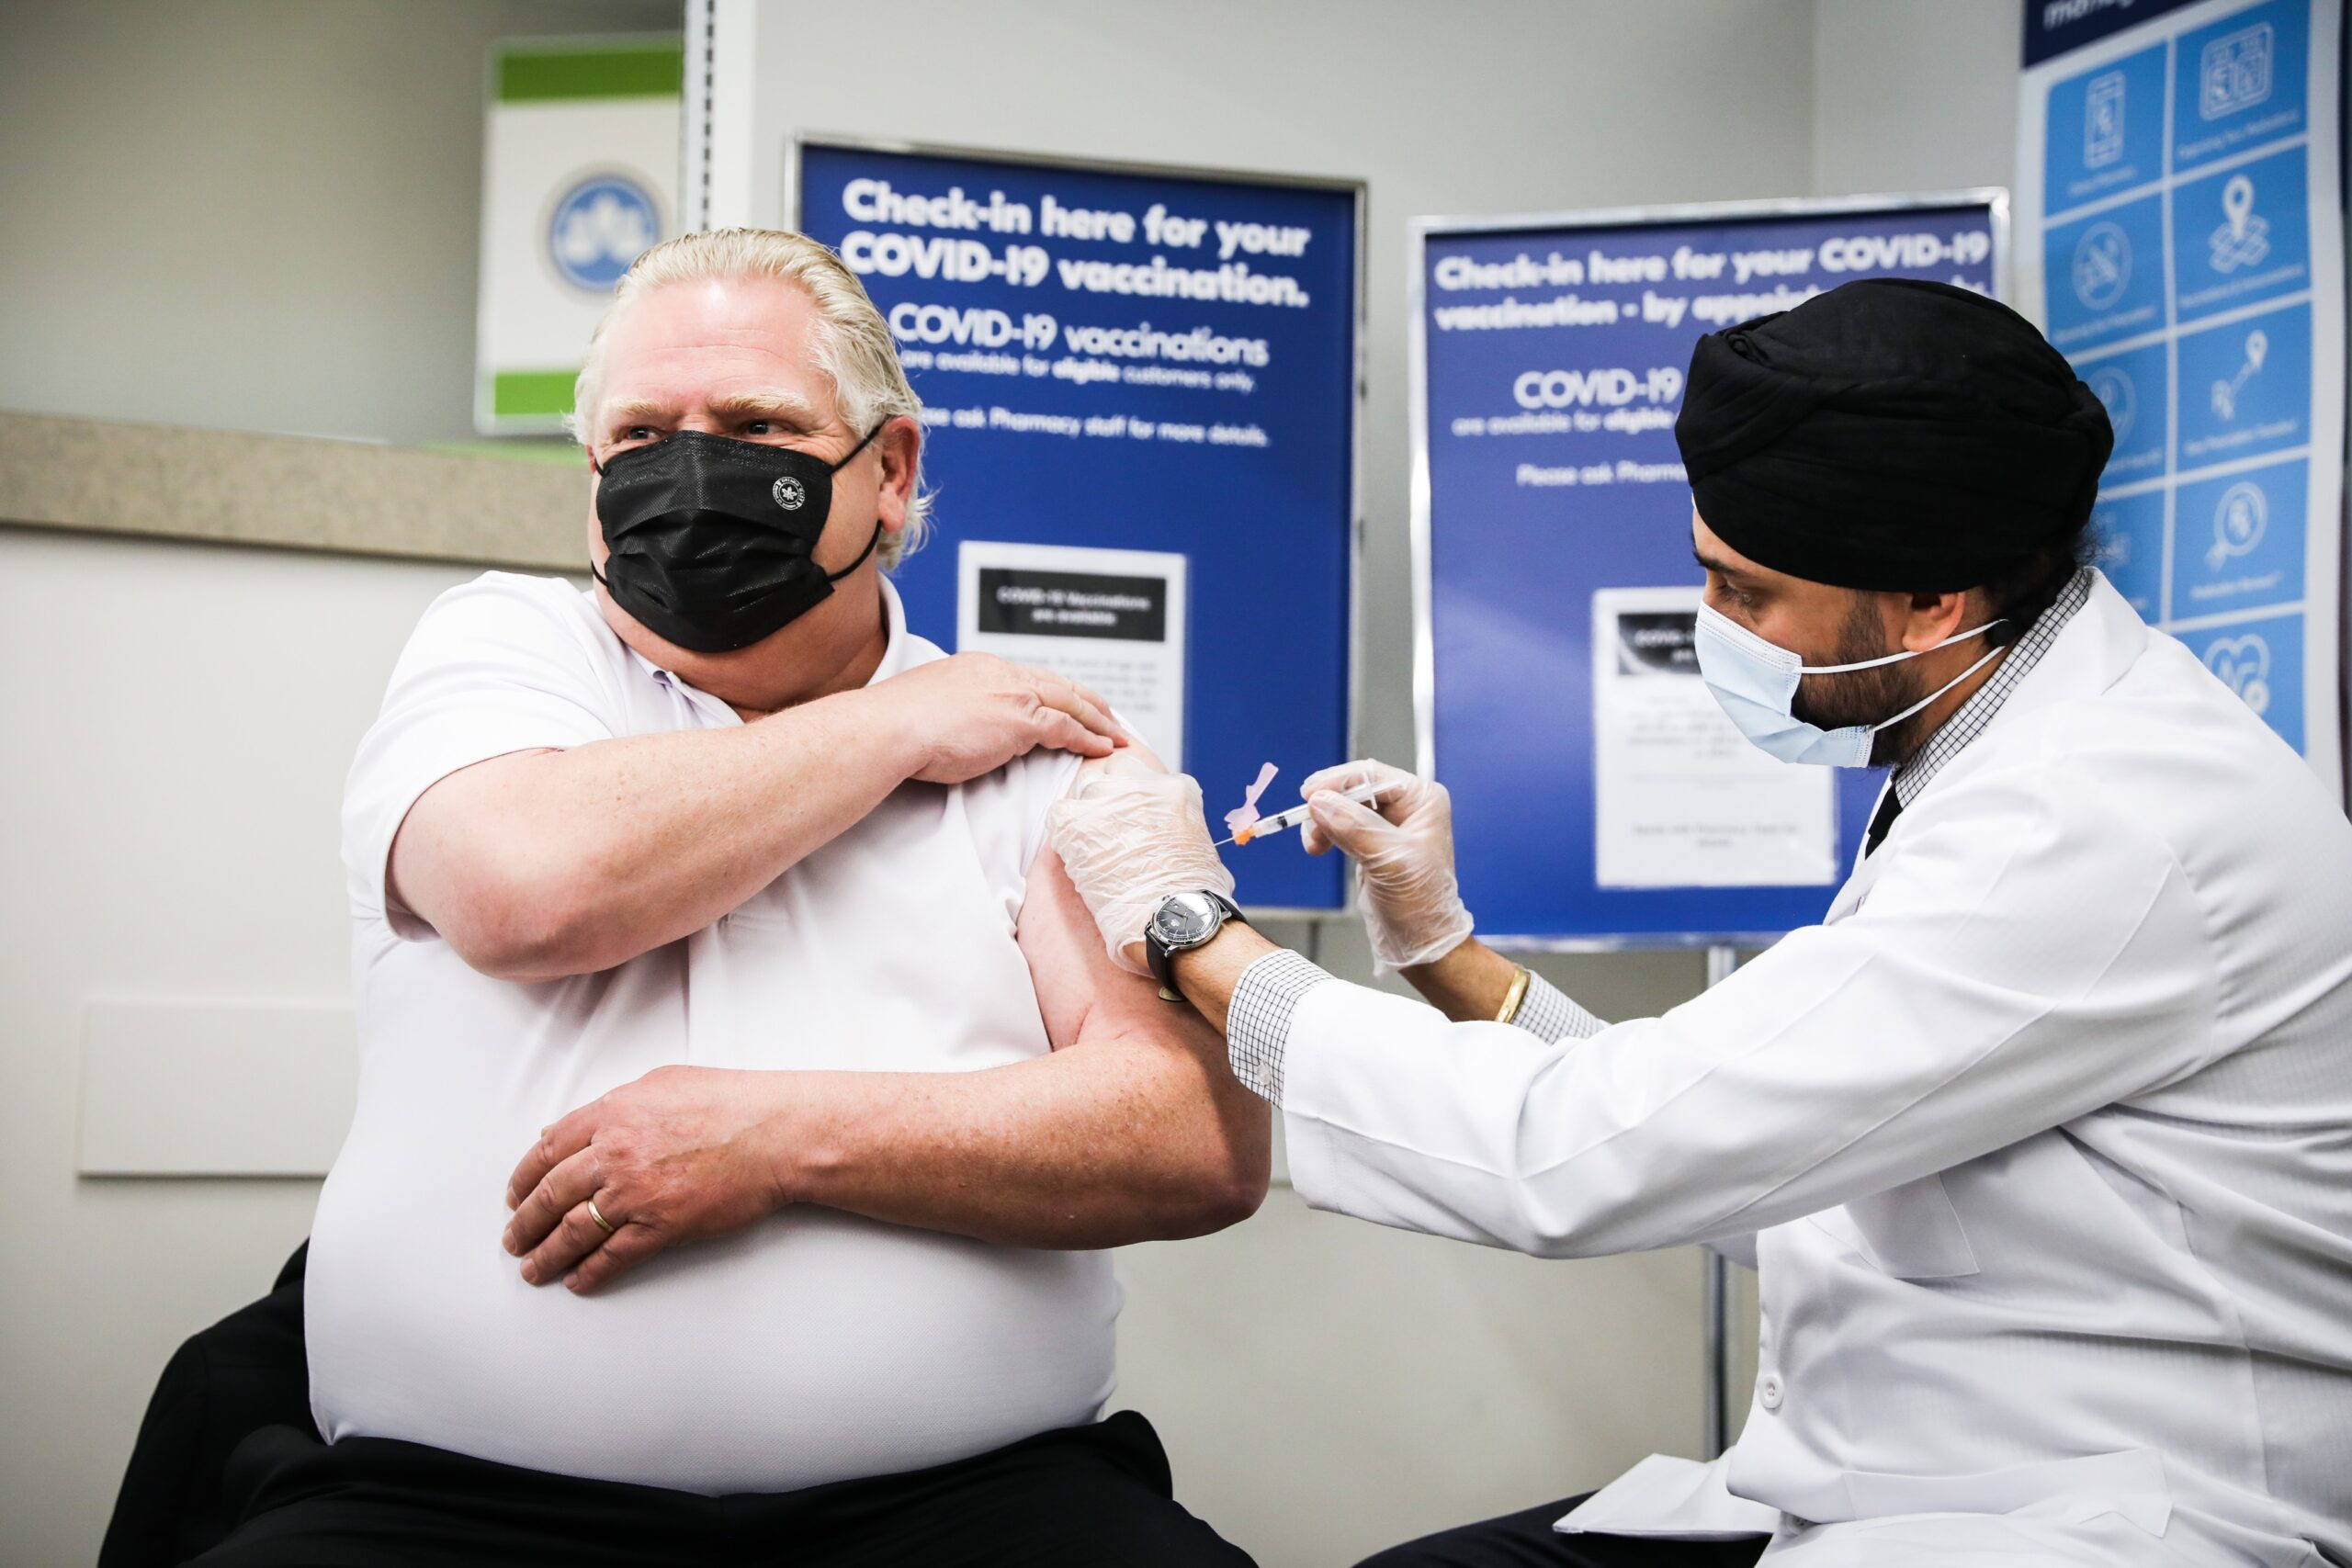 Justin Trudeau calls on Doug Ford to 'step up' and implement vaccine certificate system